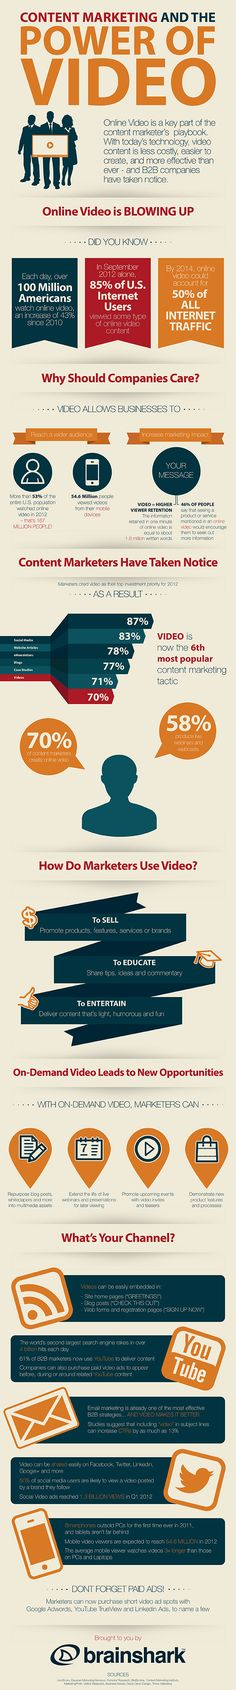 #Infographic: Content Marketing and the Power of Video